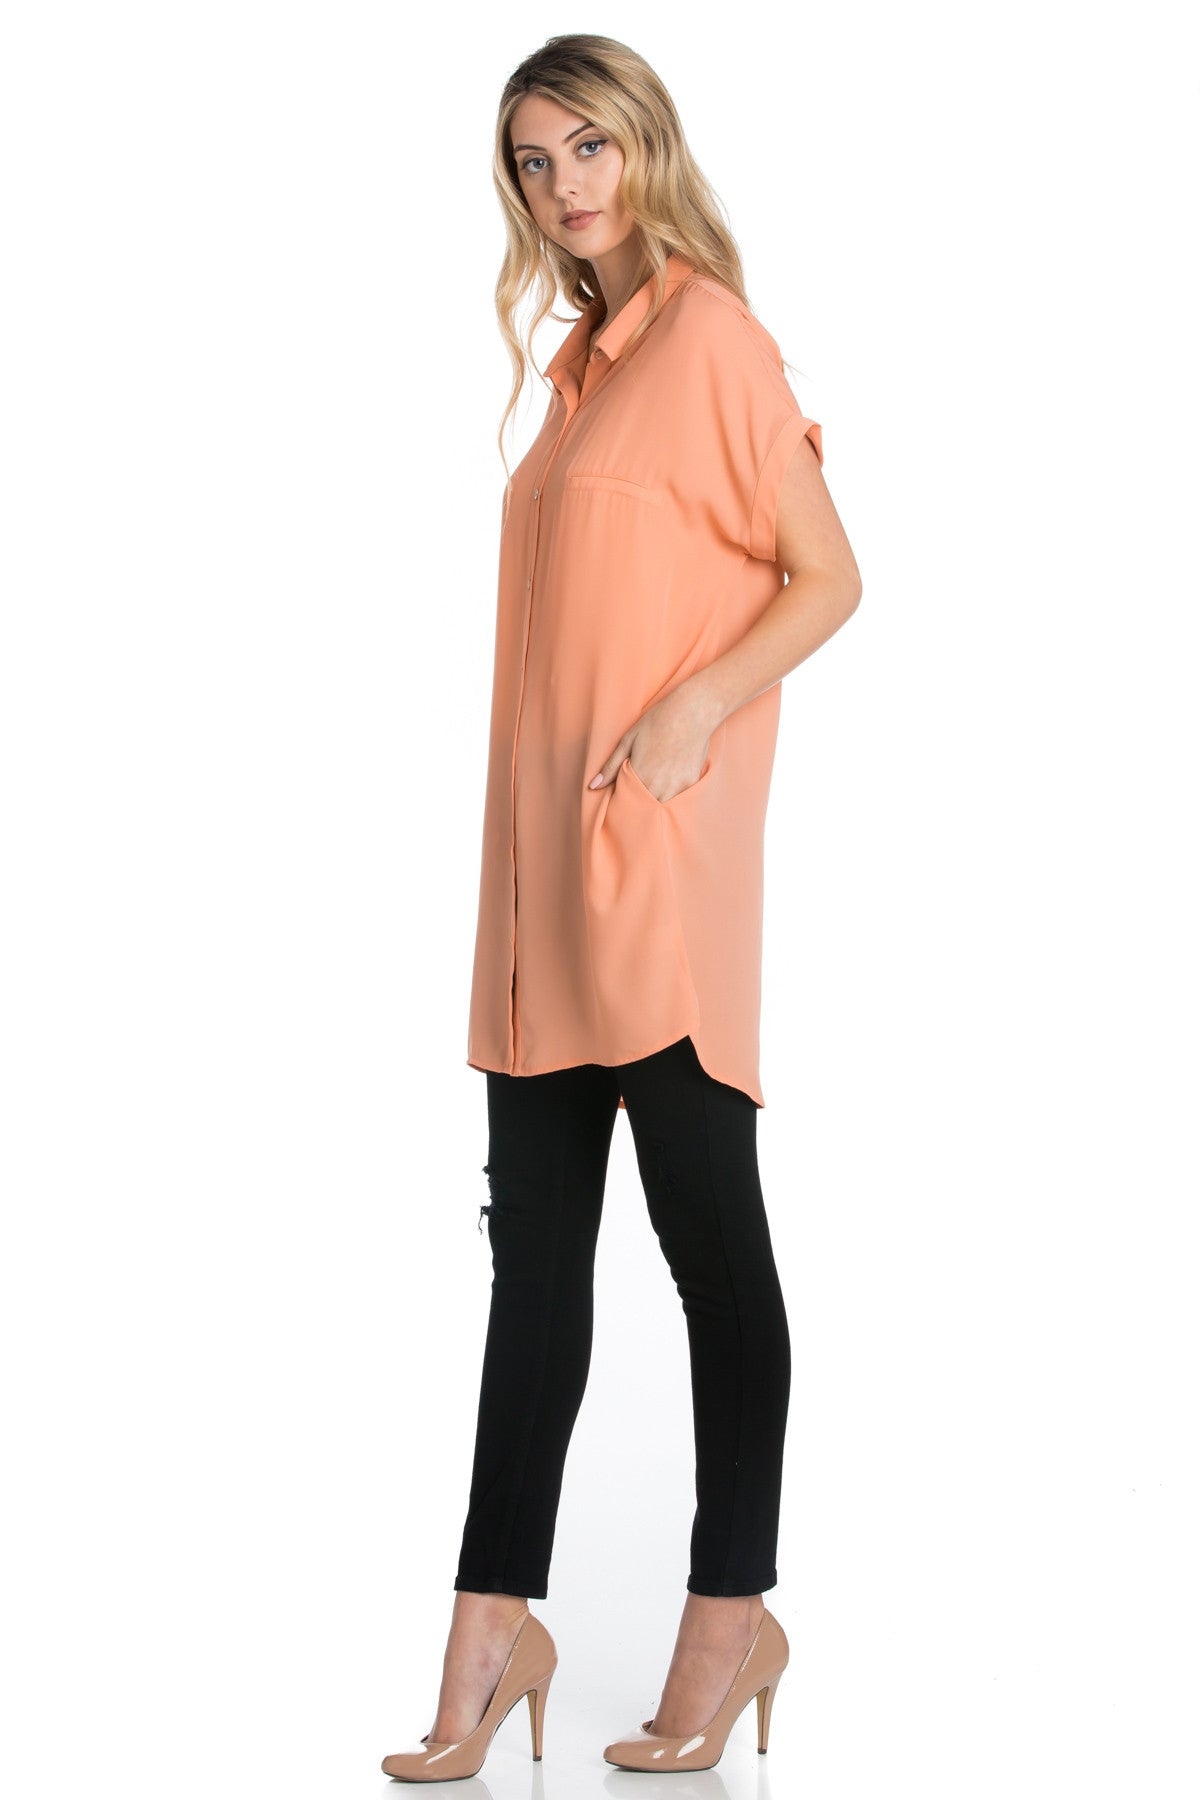 Short Sleeve Longline Button Down Chiffon Top in Peachy - Tops - My Yuccie - 2